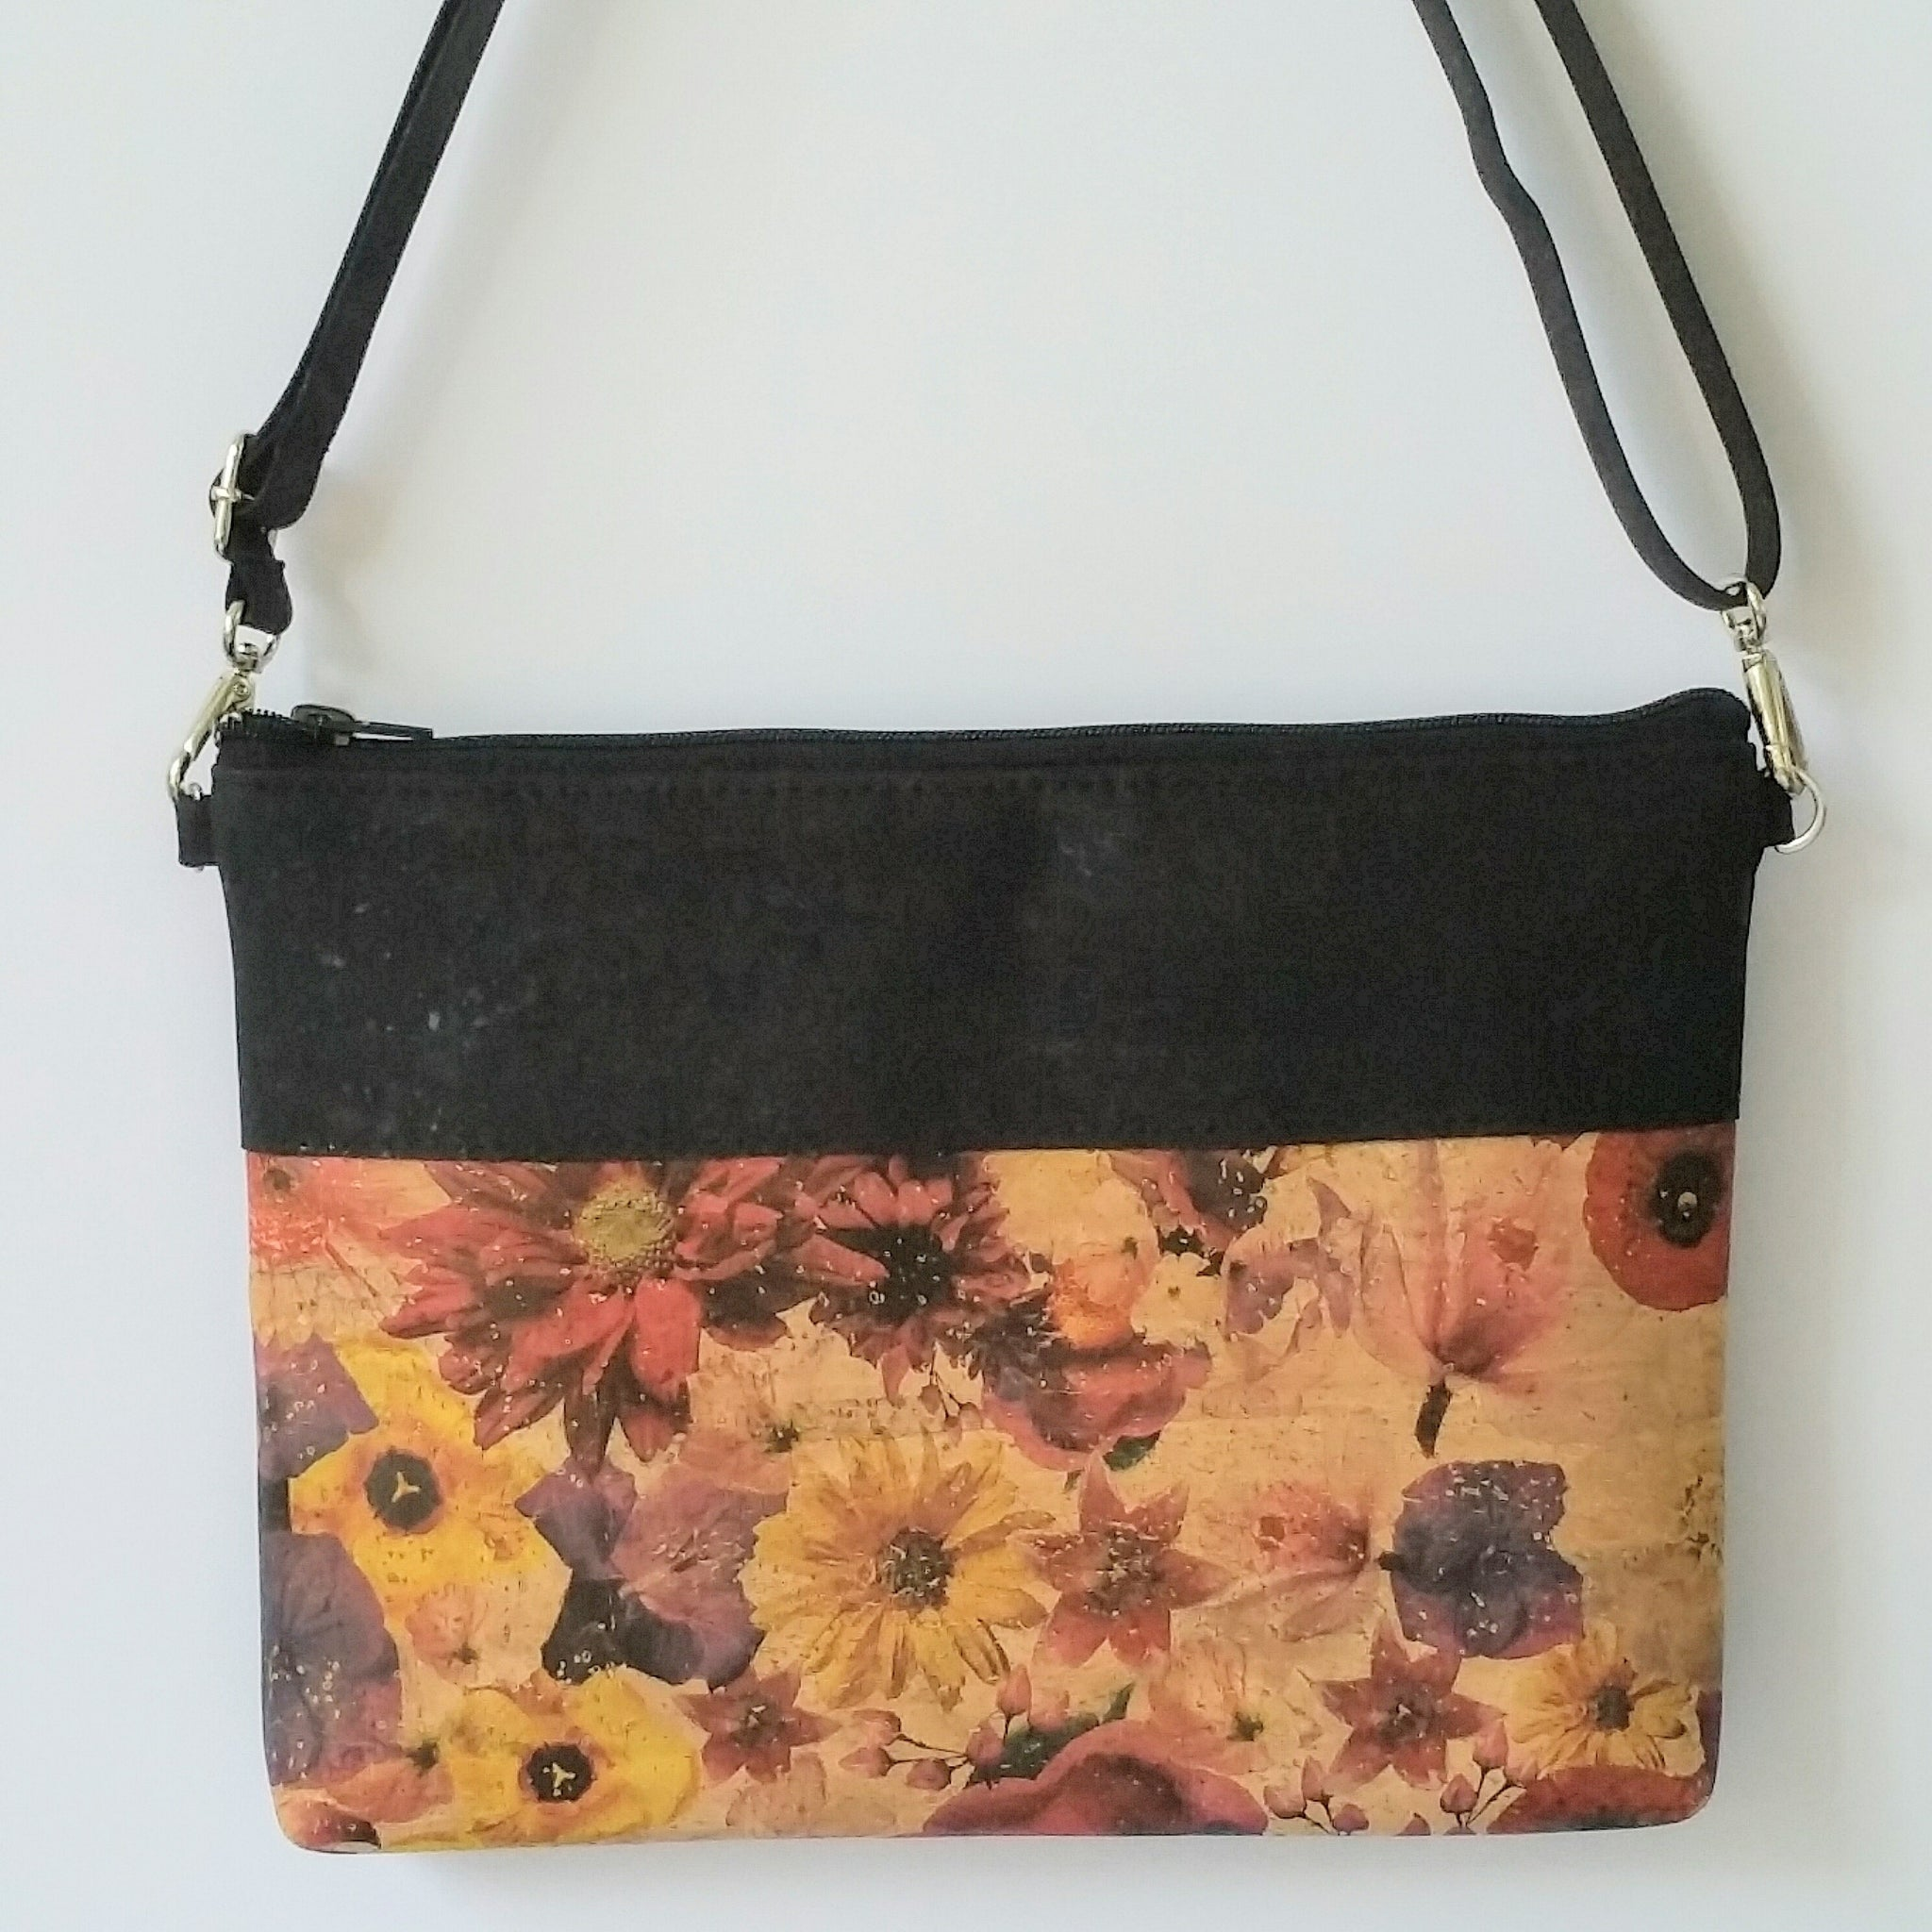 Cork Crossbody Bag/Clutch - Vintage Floral *MADE TO ORDER